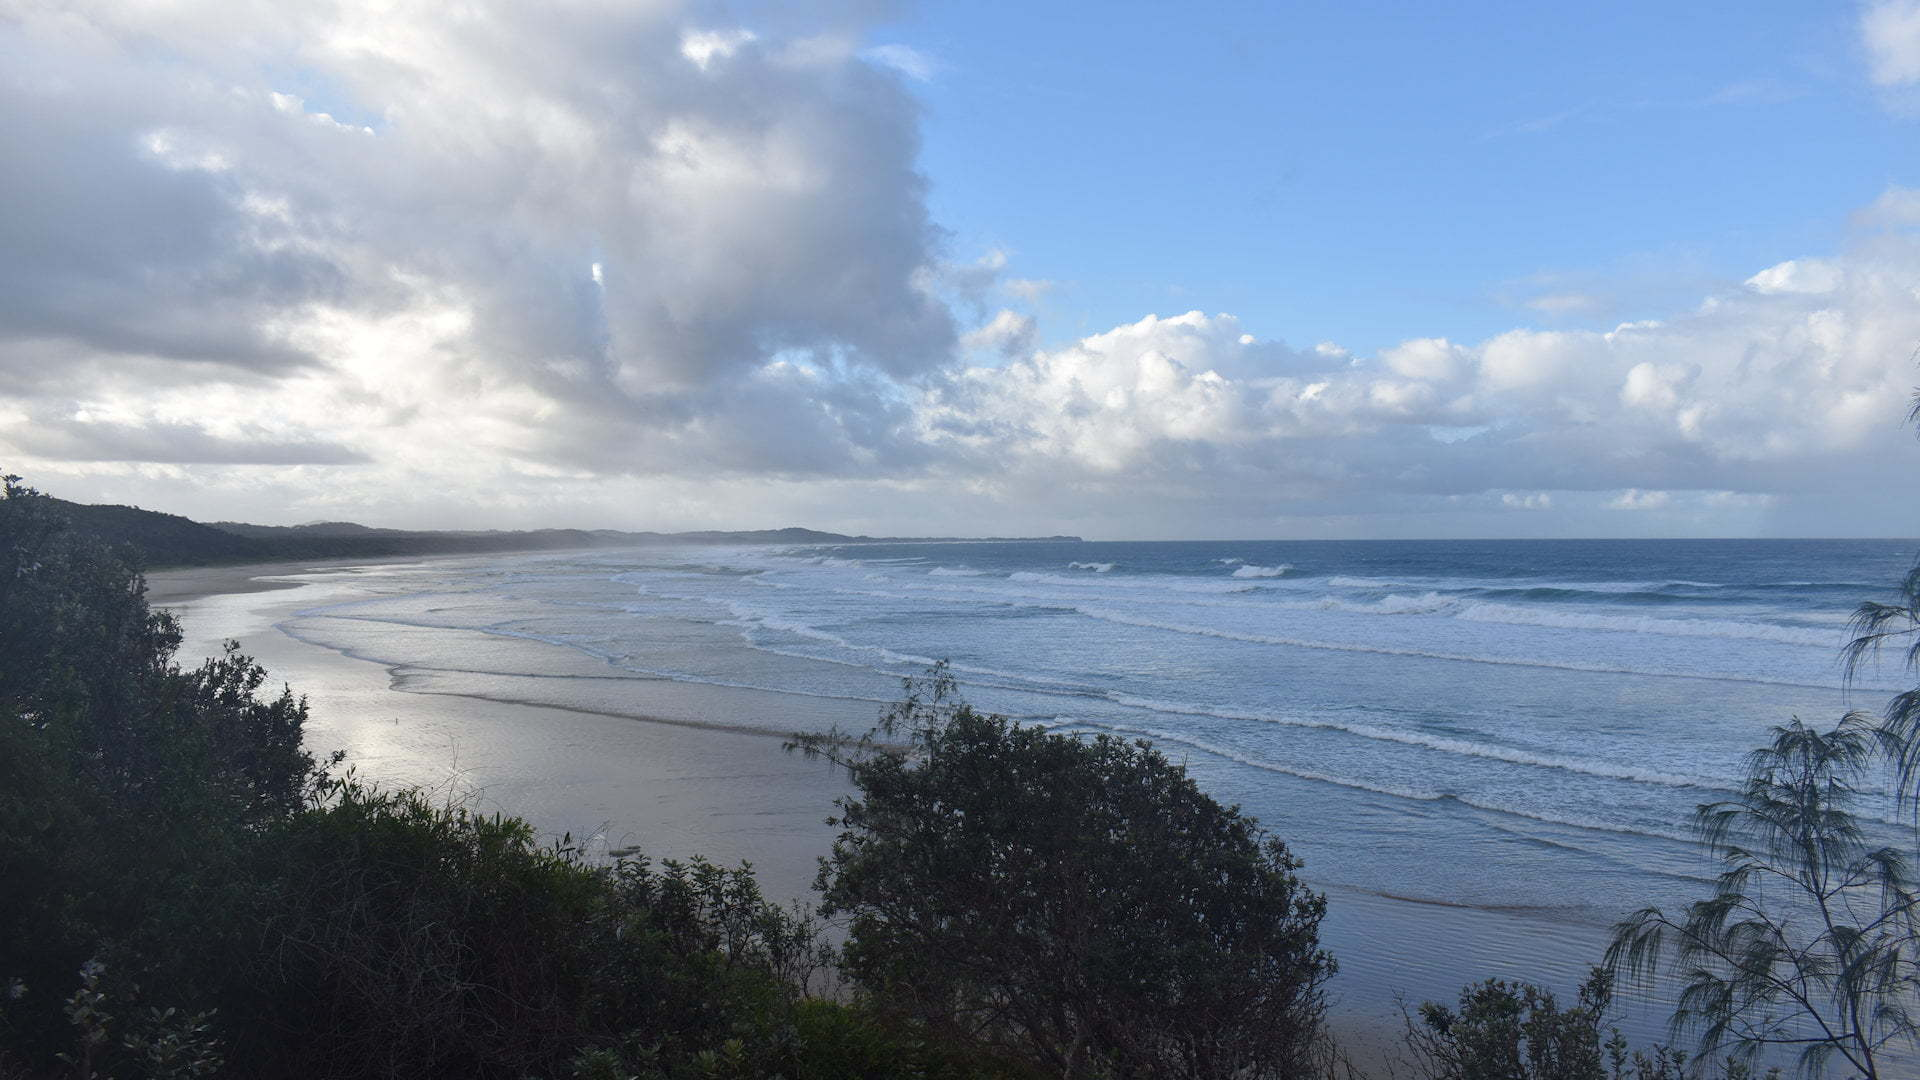 Beach from the Illaroo Camping Area in the Yuraygir National Park